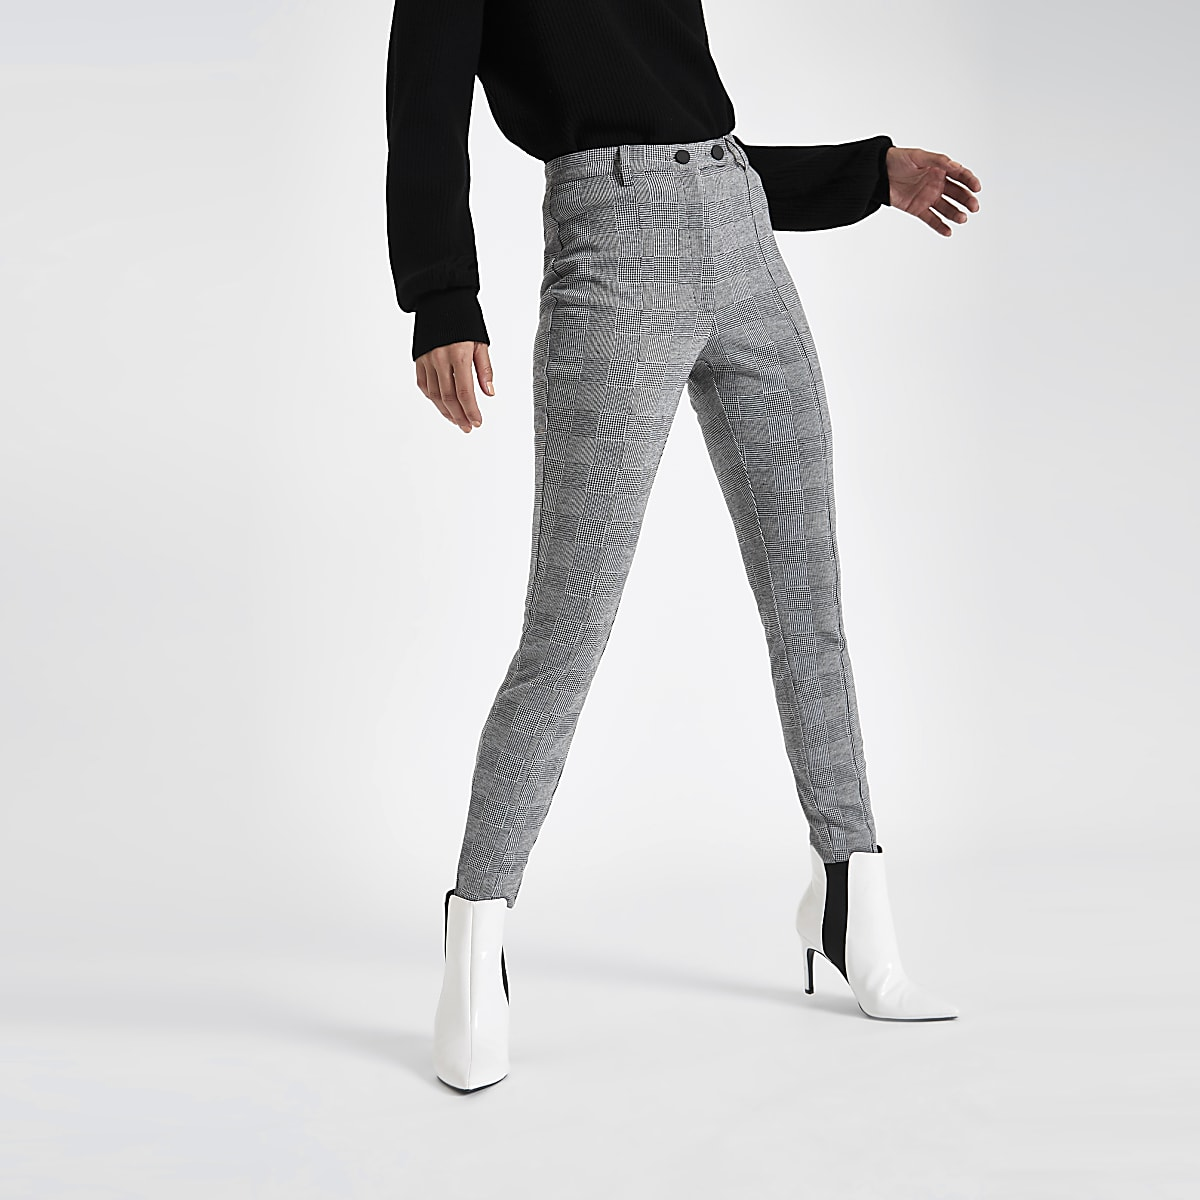 b980b72d1f1f5f Grey check skinny trousers - Skinny Trousers - Trousers - women